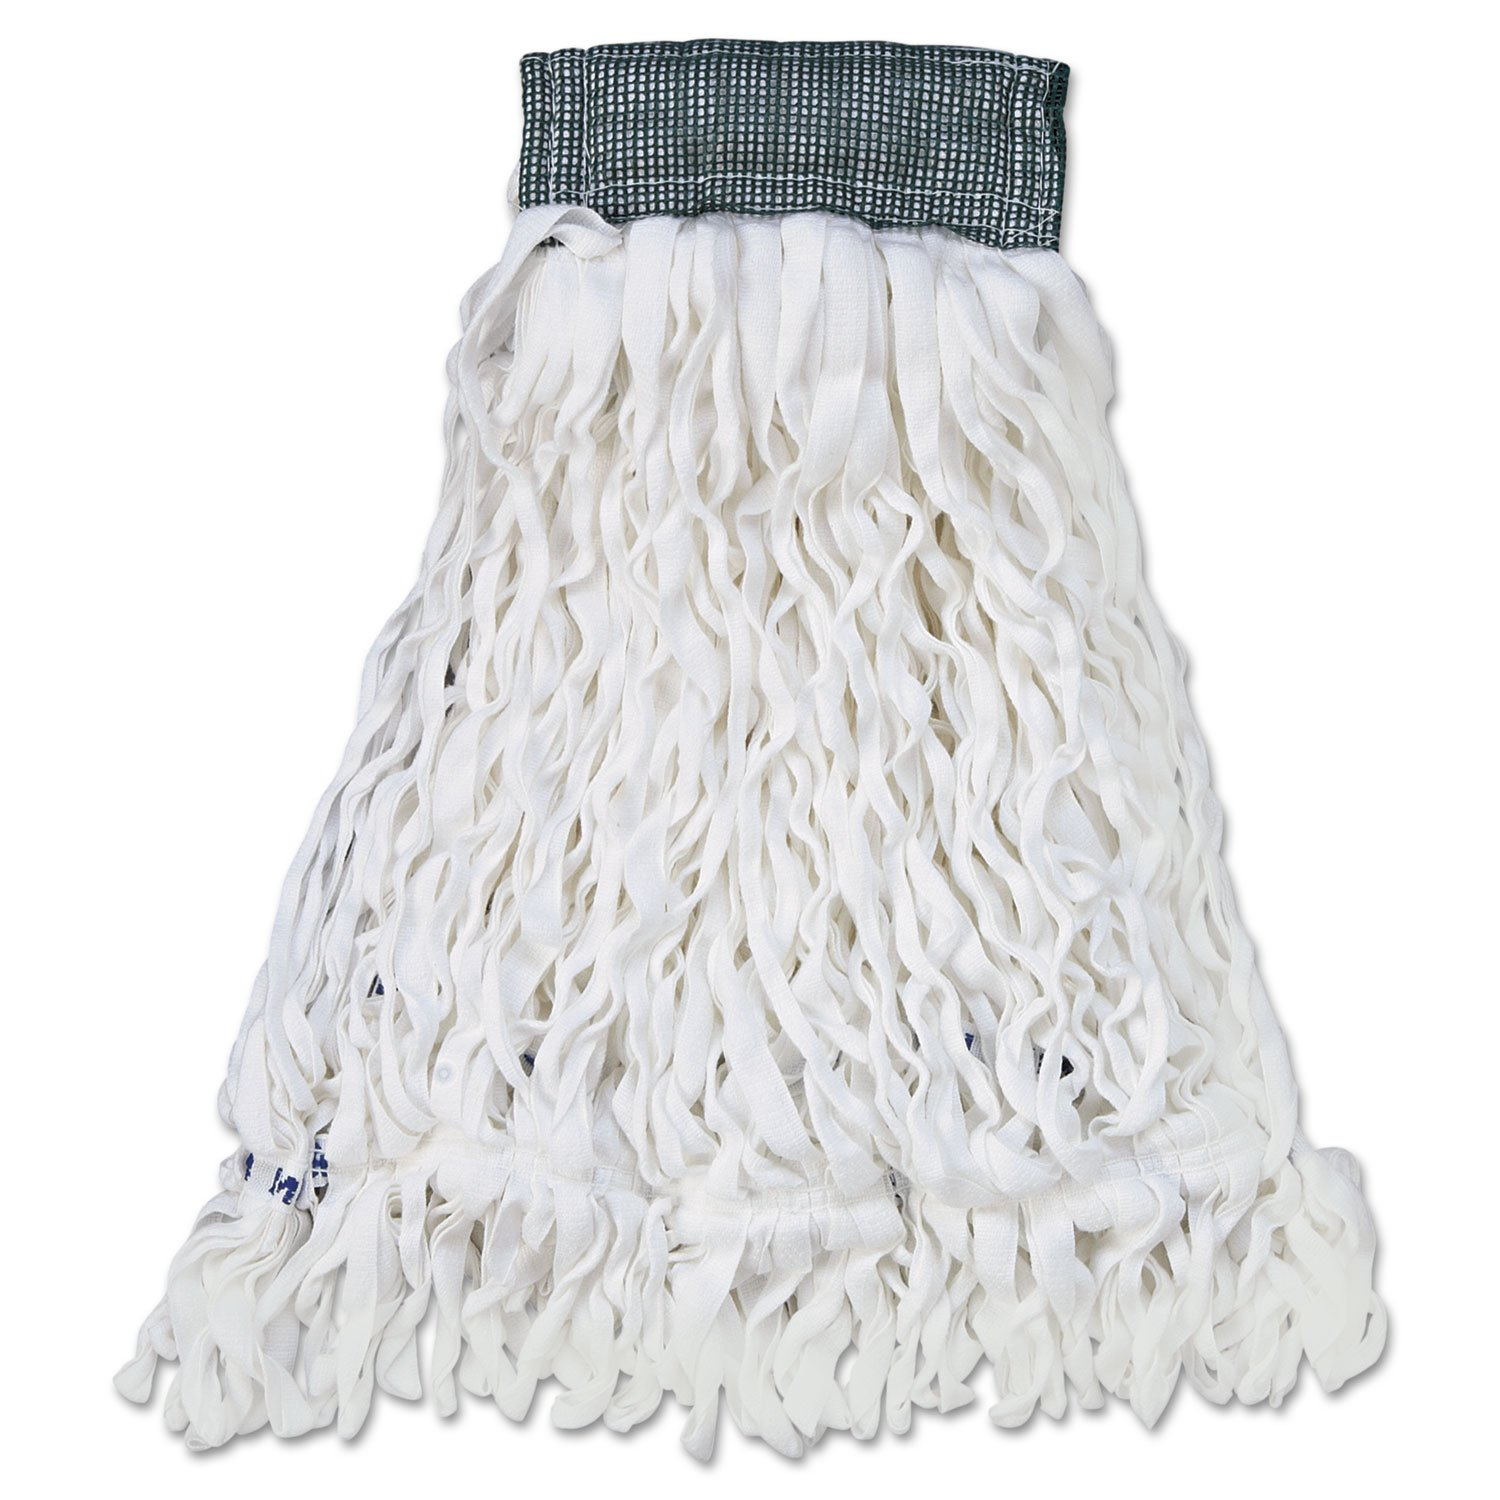 Clean Room Maintenance Mop, Medium - Tail Banded Mop For Greater Floor Coverage -- 12 Per Case.